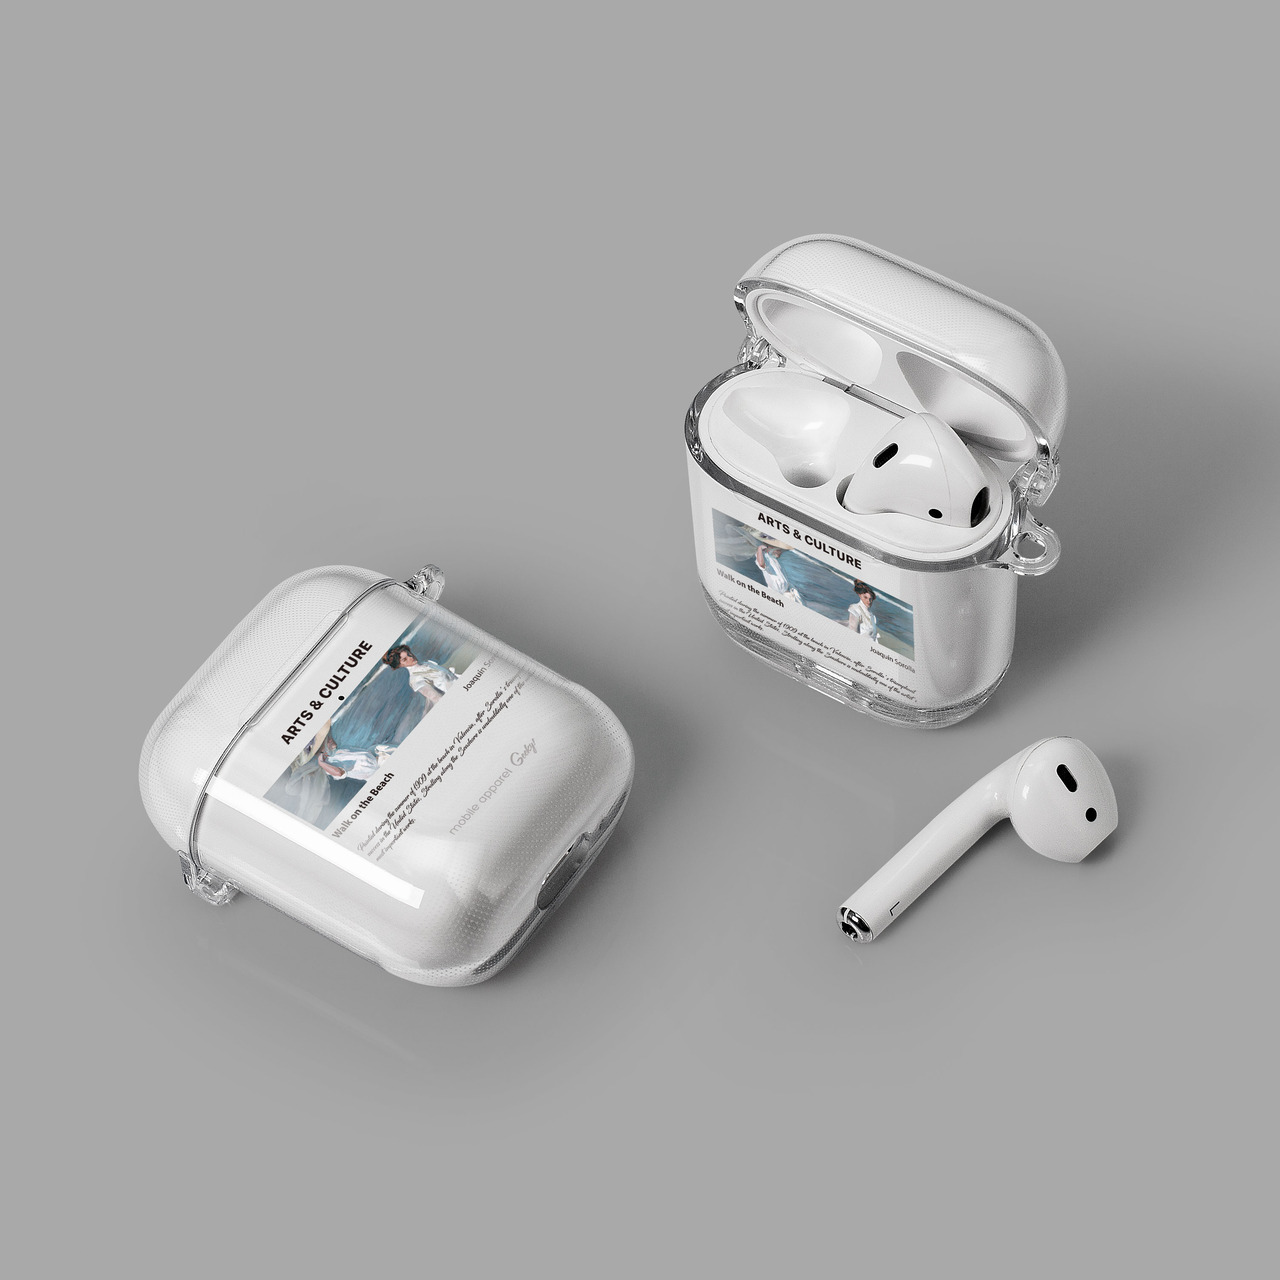 [Airpods cases] Arts & Culture No.05